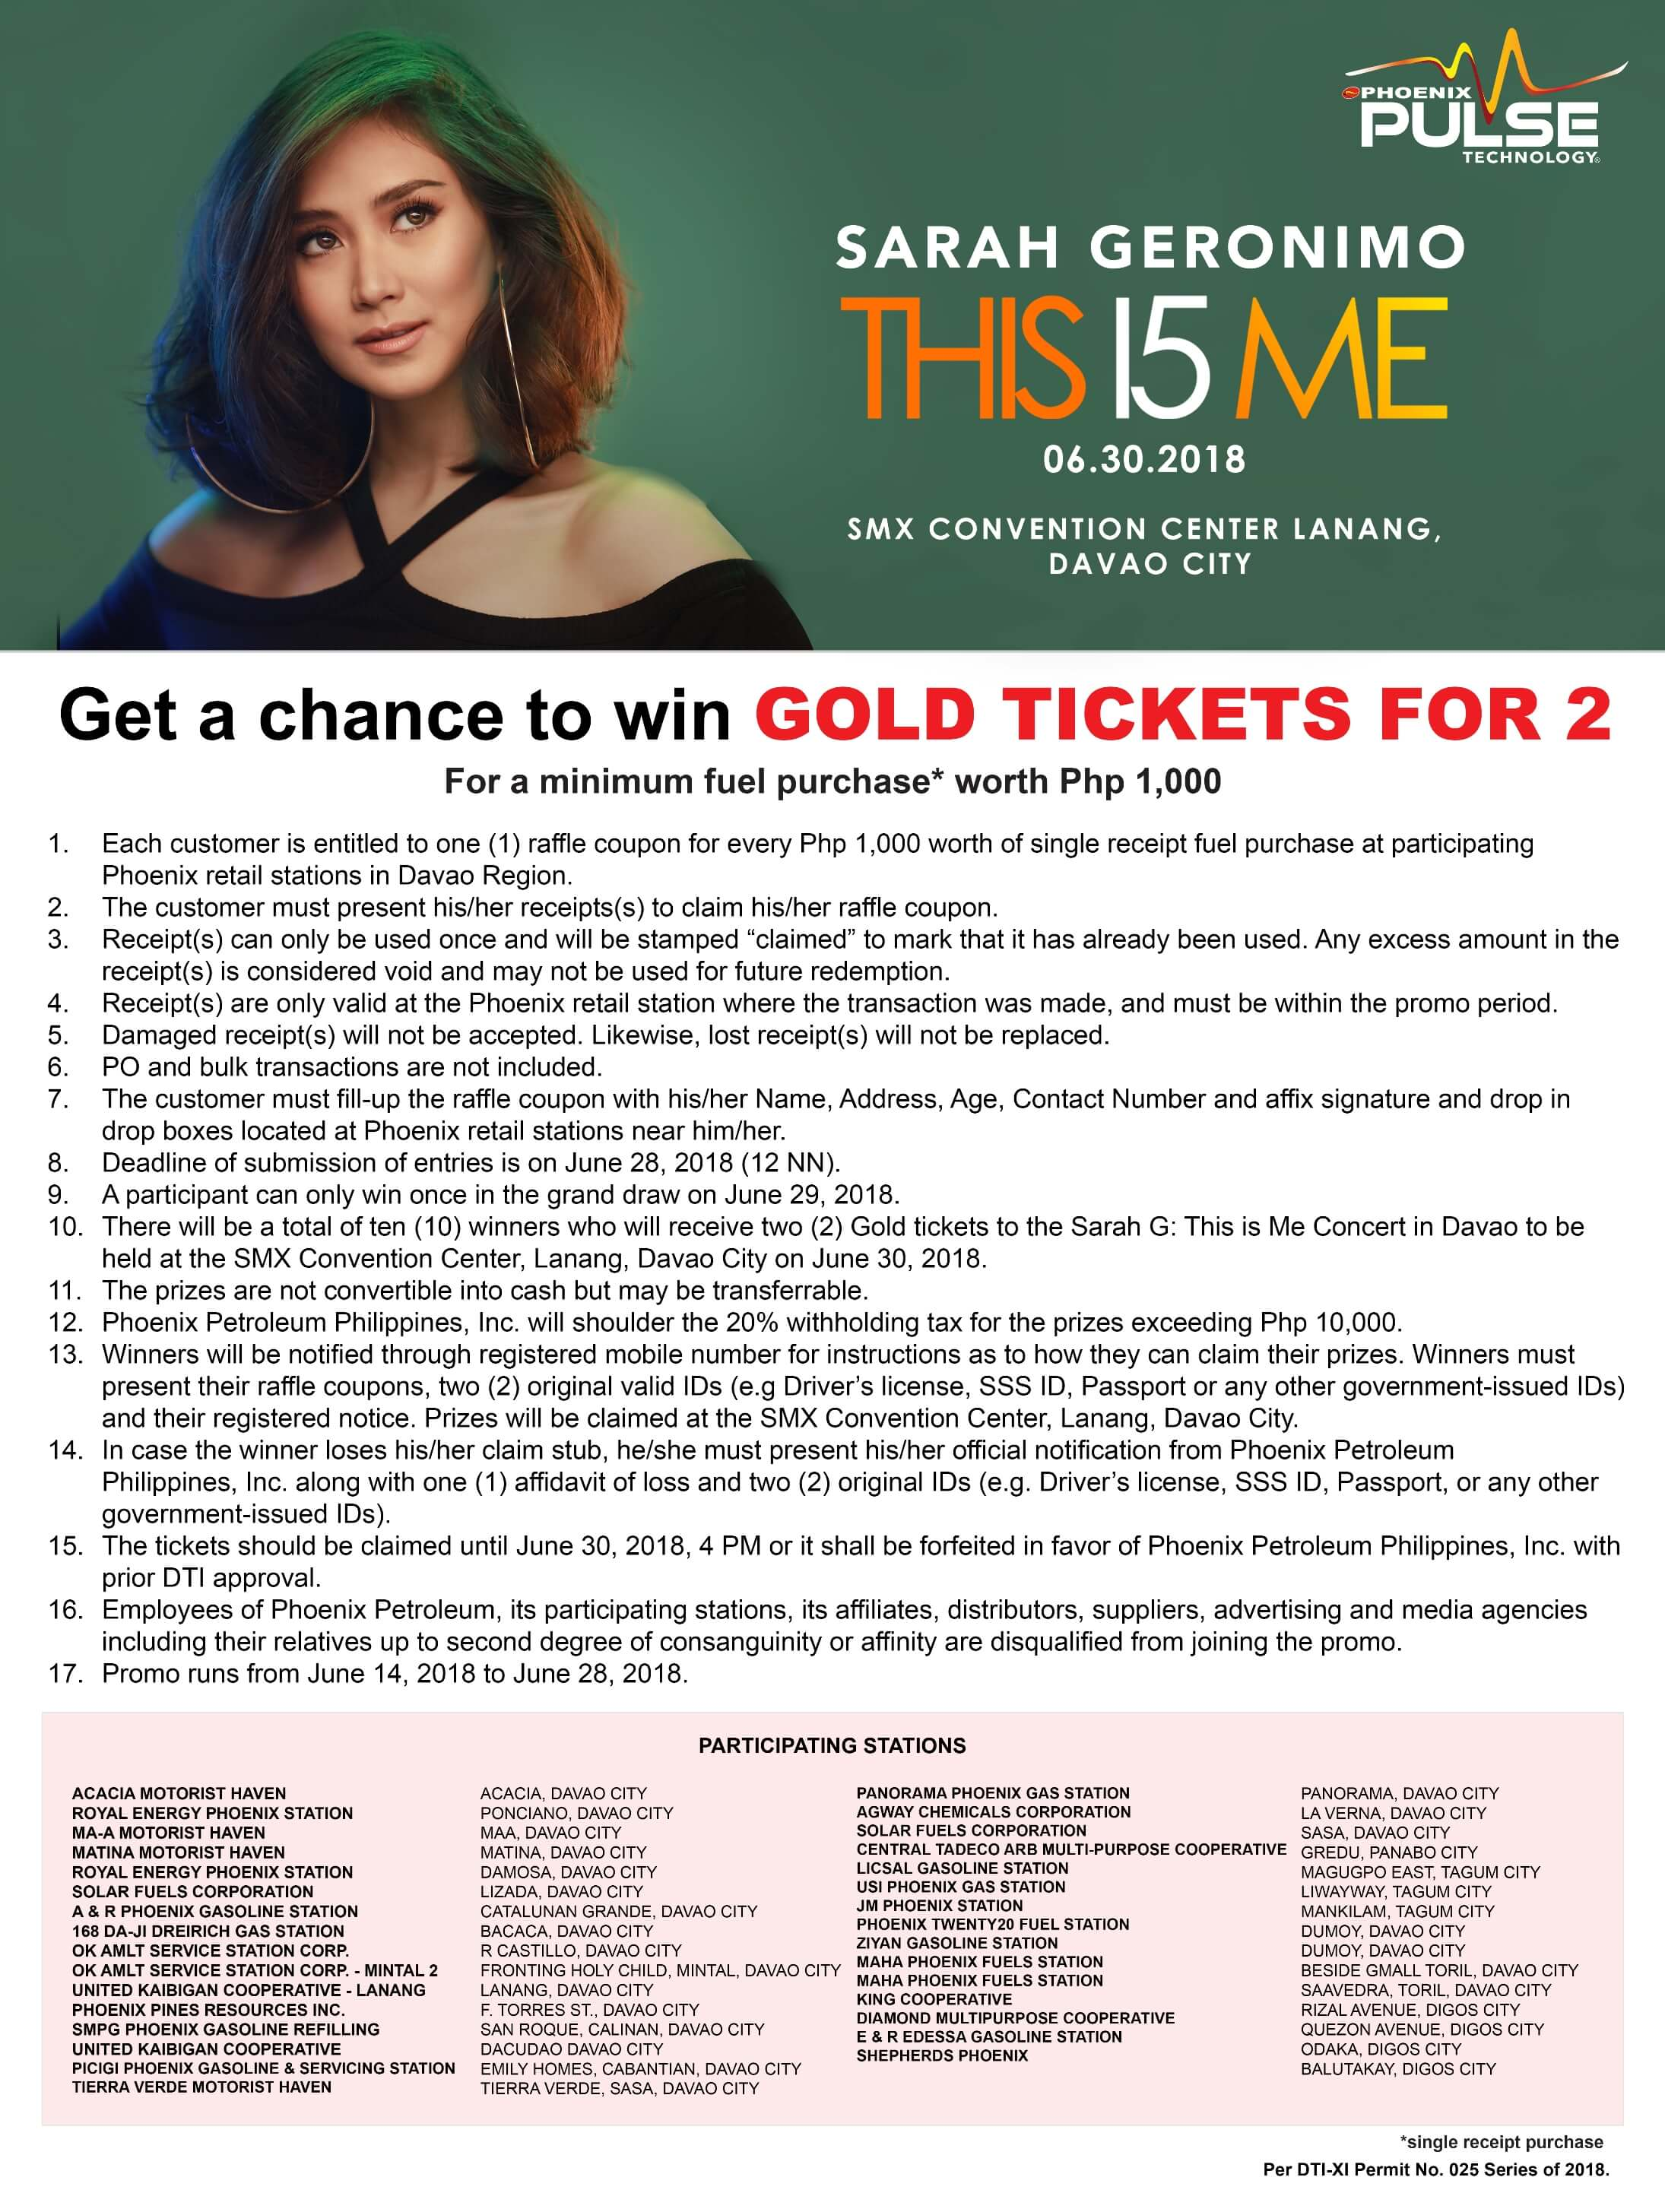 Win Sarah G concert tickets when you gas up at Phoenix